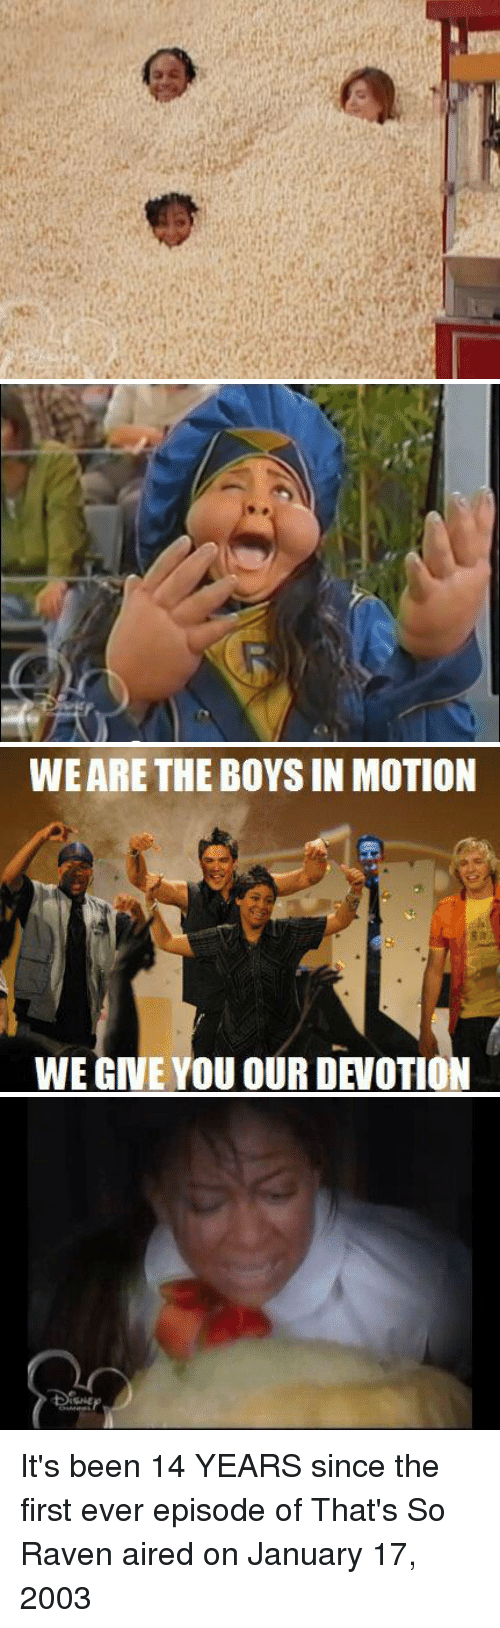 That's So Raven: a   WE ARE THE BOYS IN MOTION  諀  WE GIVE YOU OUR DEVOTION  us   ISME It's been 14 YEARS since the first ever episode of That's So Raven aired on January 17, 2003